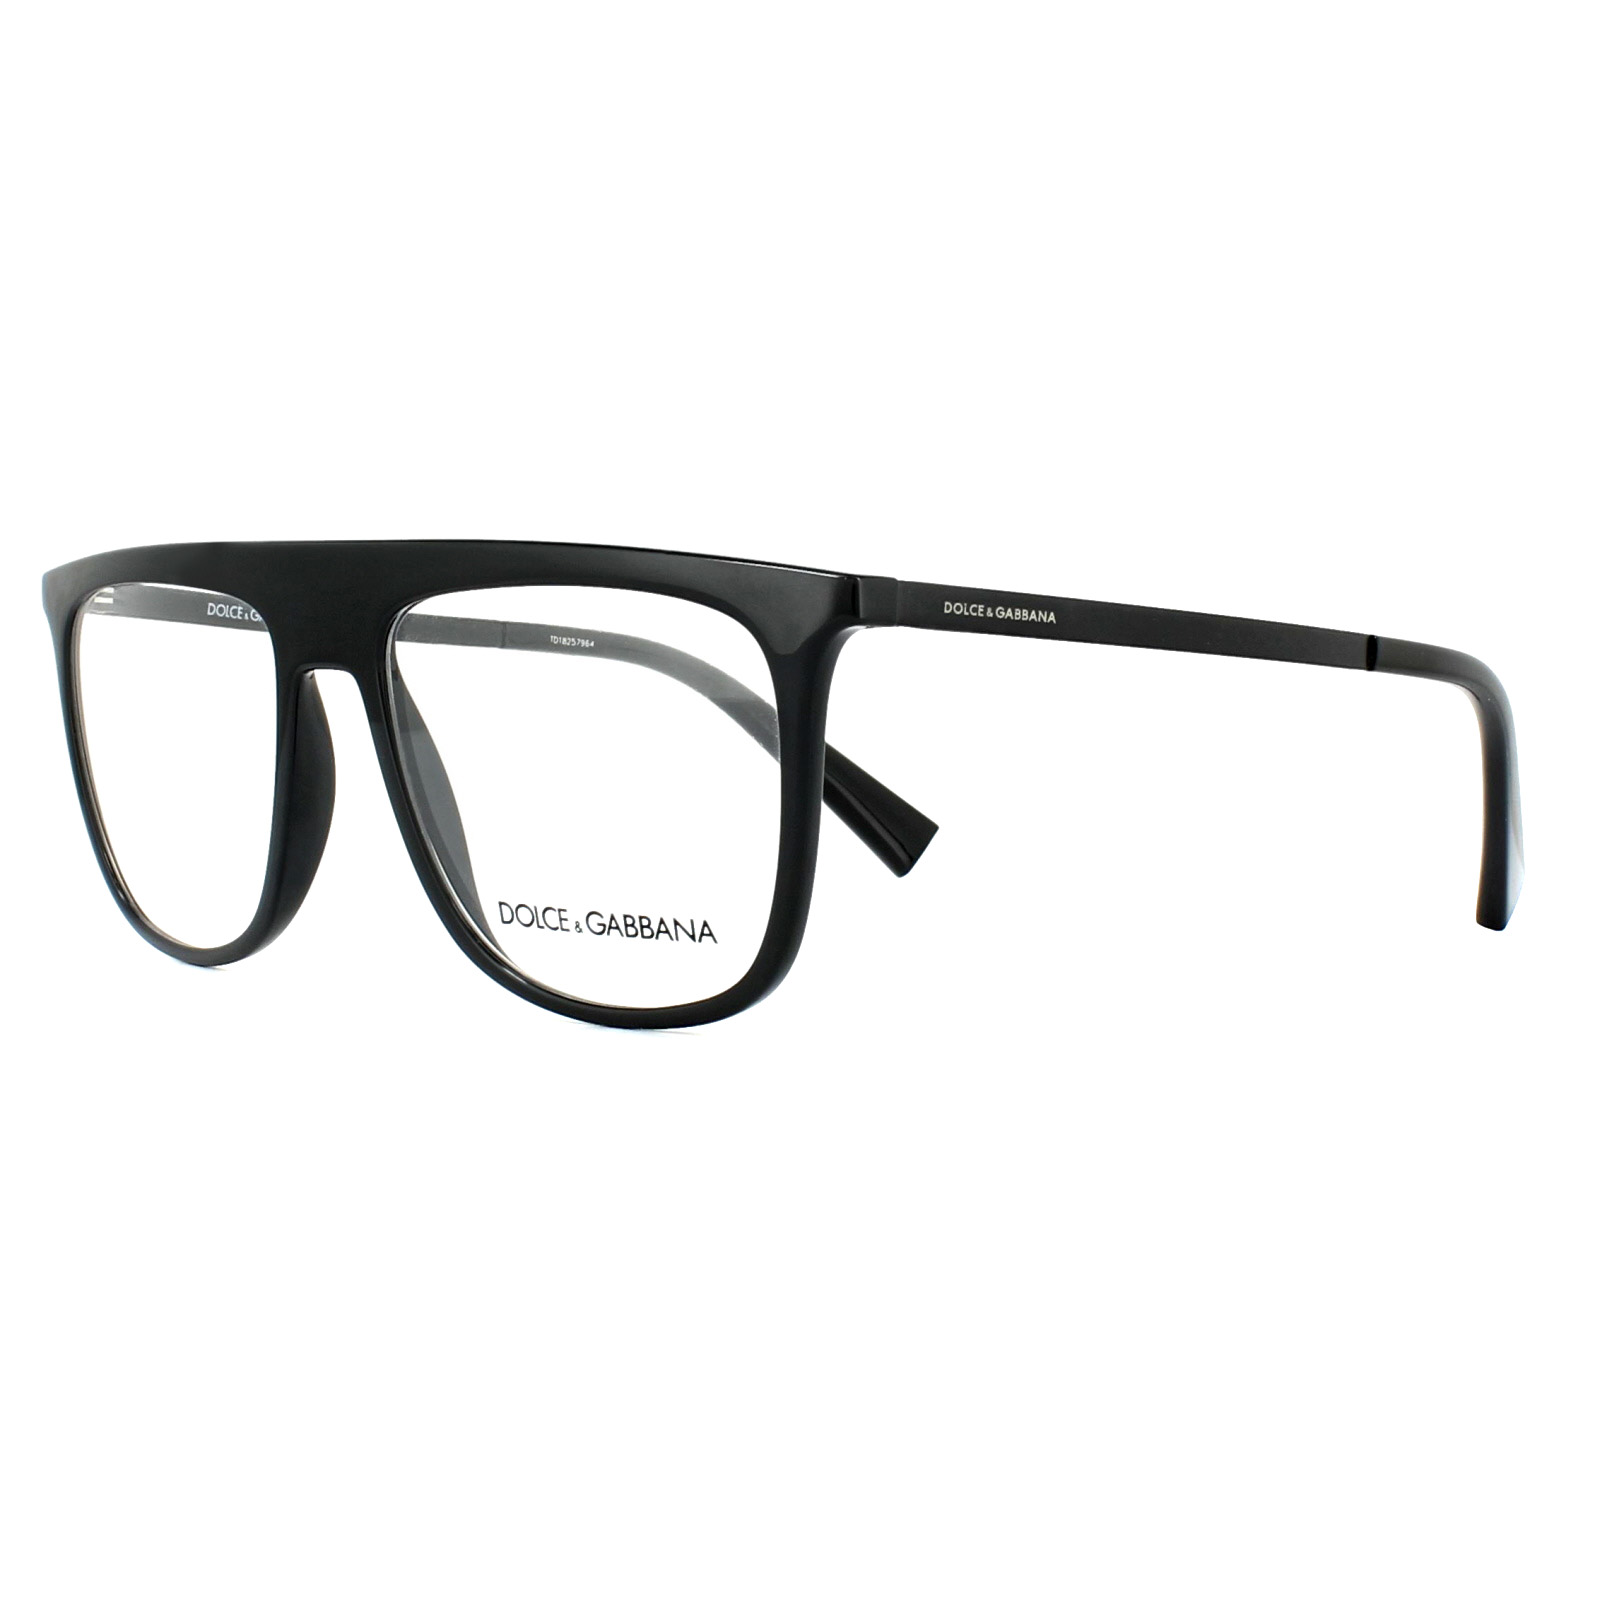 Cheap Dolce & Gabbana DG 5022 Glasses Frames - Discounted Sunglasses